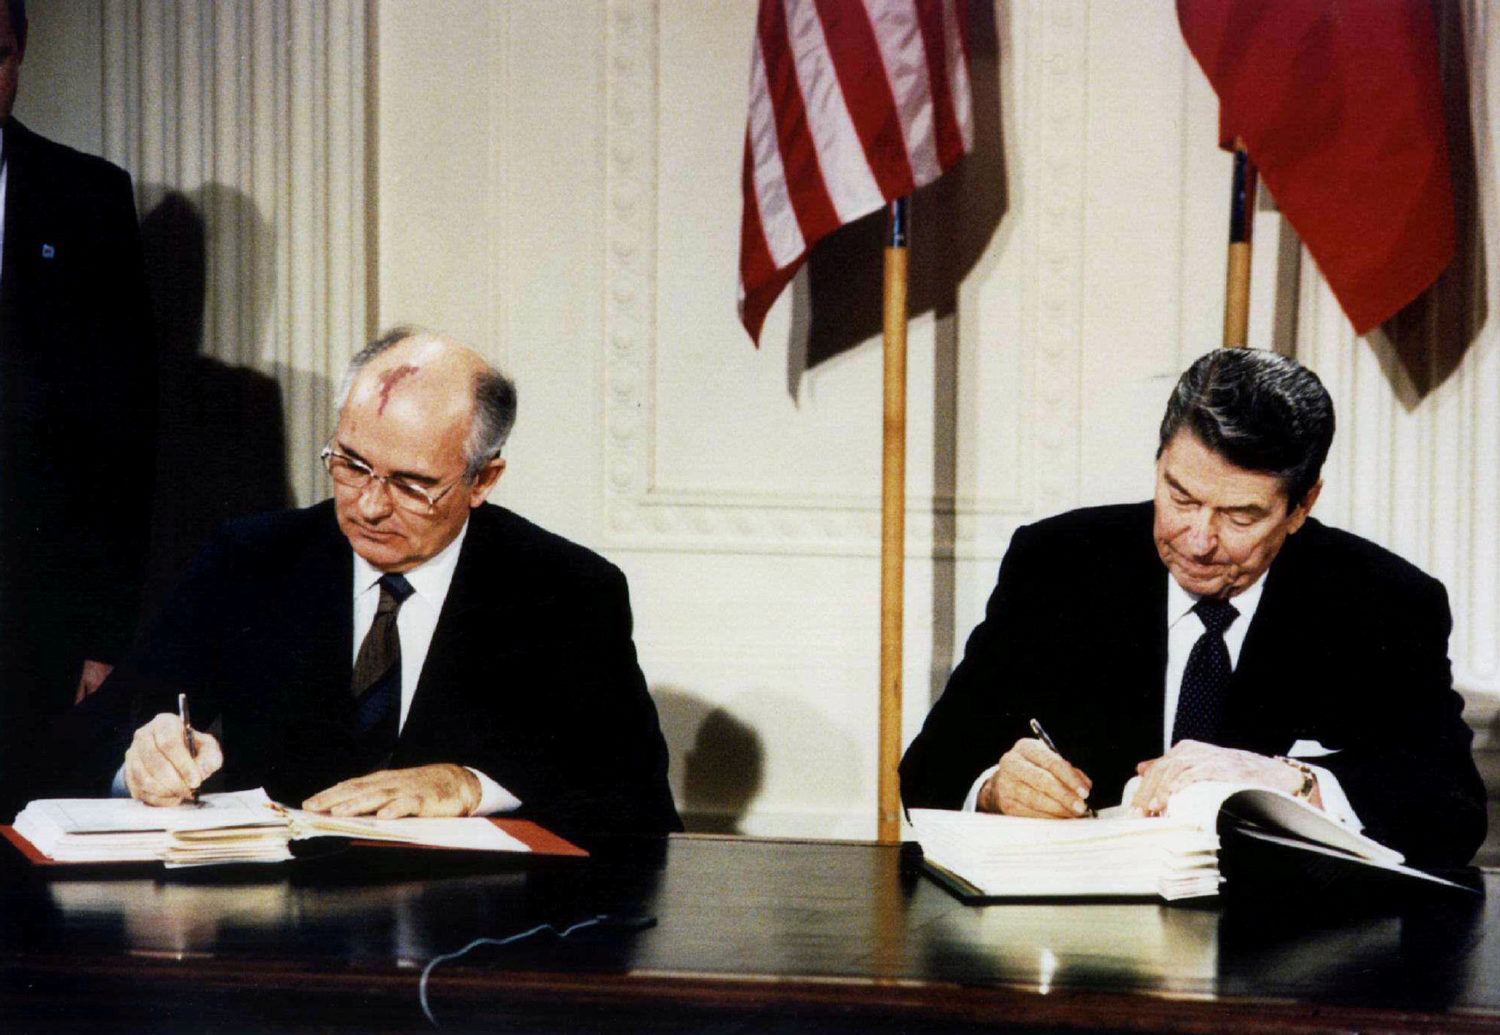 FILE PHOTO: Late U.S. President Ronald Reagan (R) and then-Soviet leader Mikhail Gorbachev sign the Intermediate-Range Nuclear Forces (INF) treaty in the White House, December 8, 1987. REUTERS/Stringer